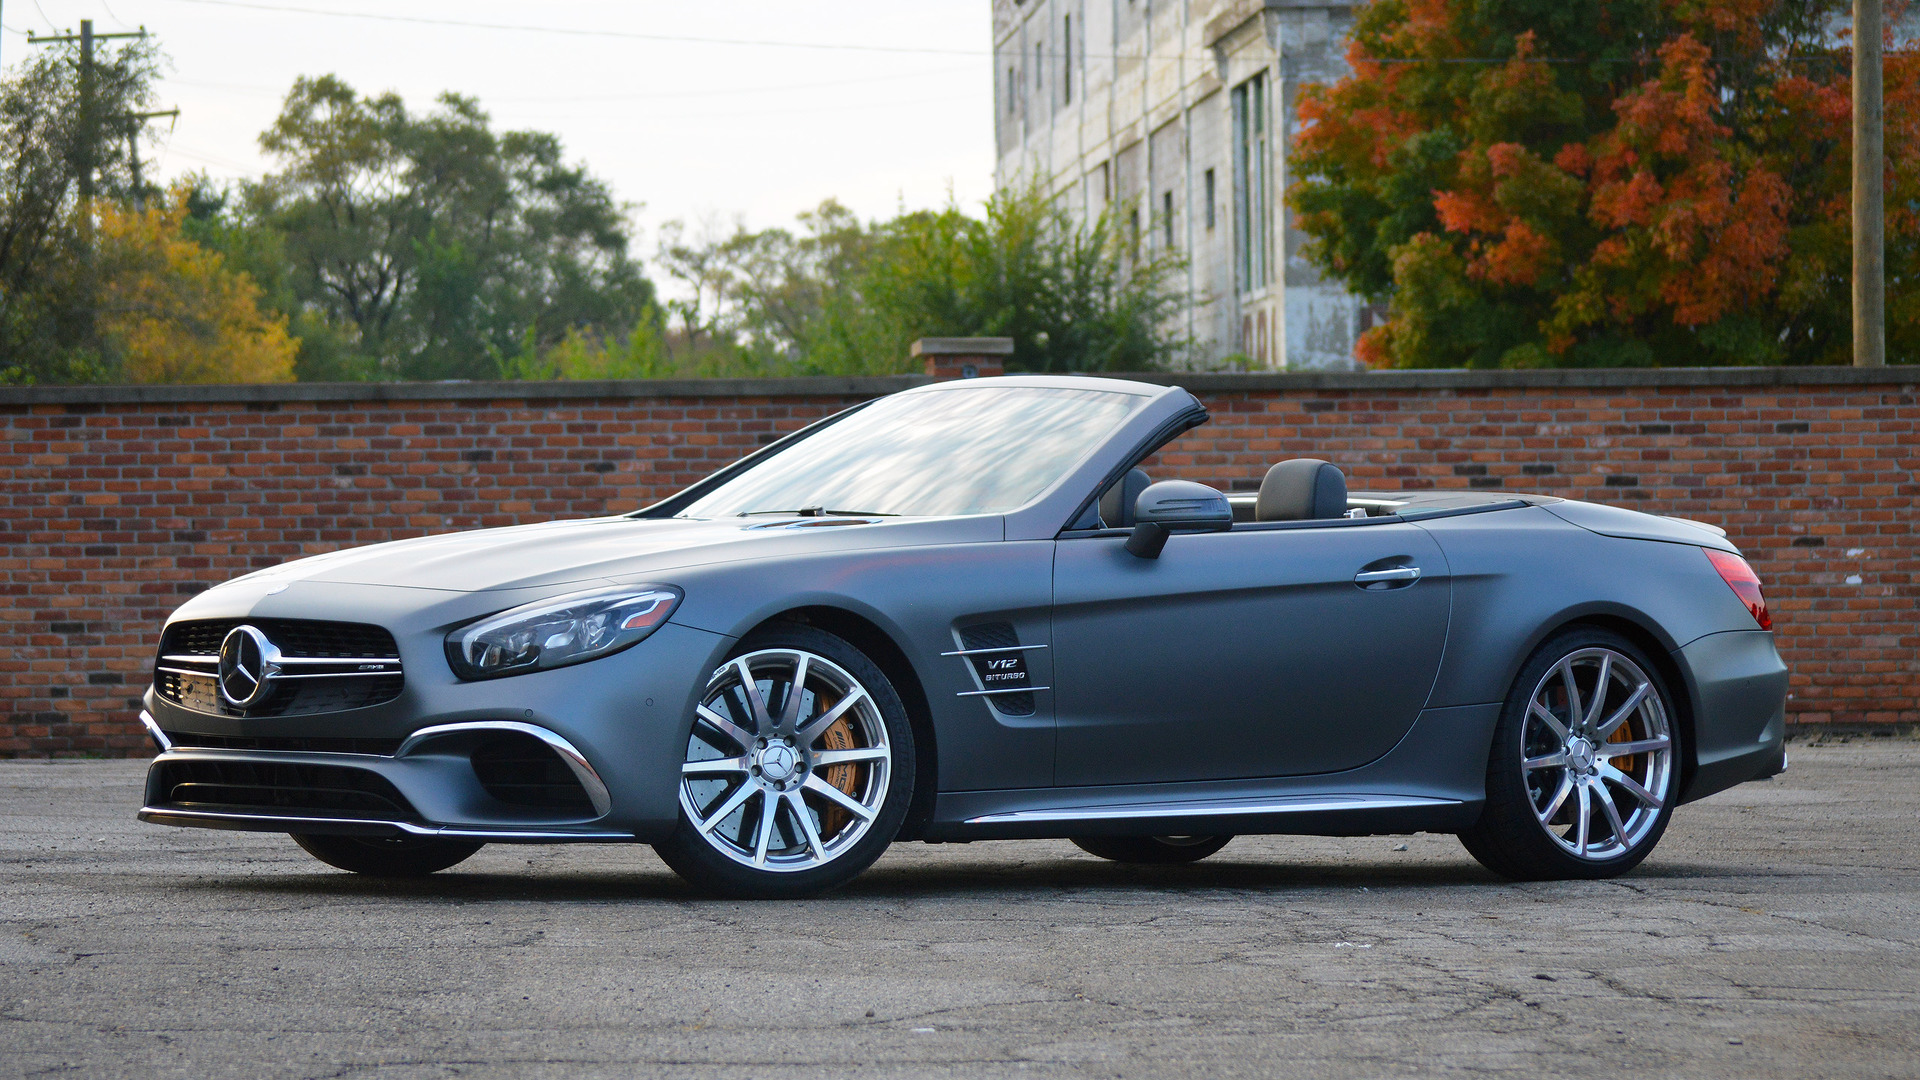 https://icdn-0.motor1.com/images/mgl/e1mPW/s1/2017-mercedes-amg-sl65-review.jpg